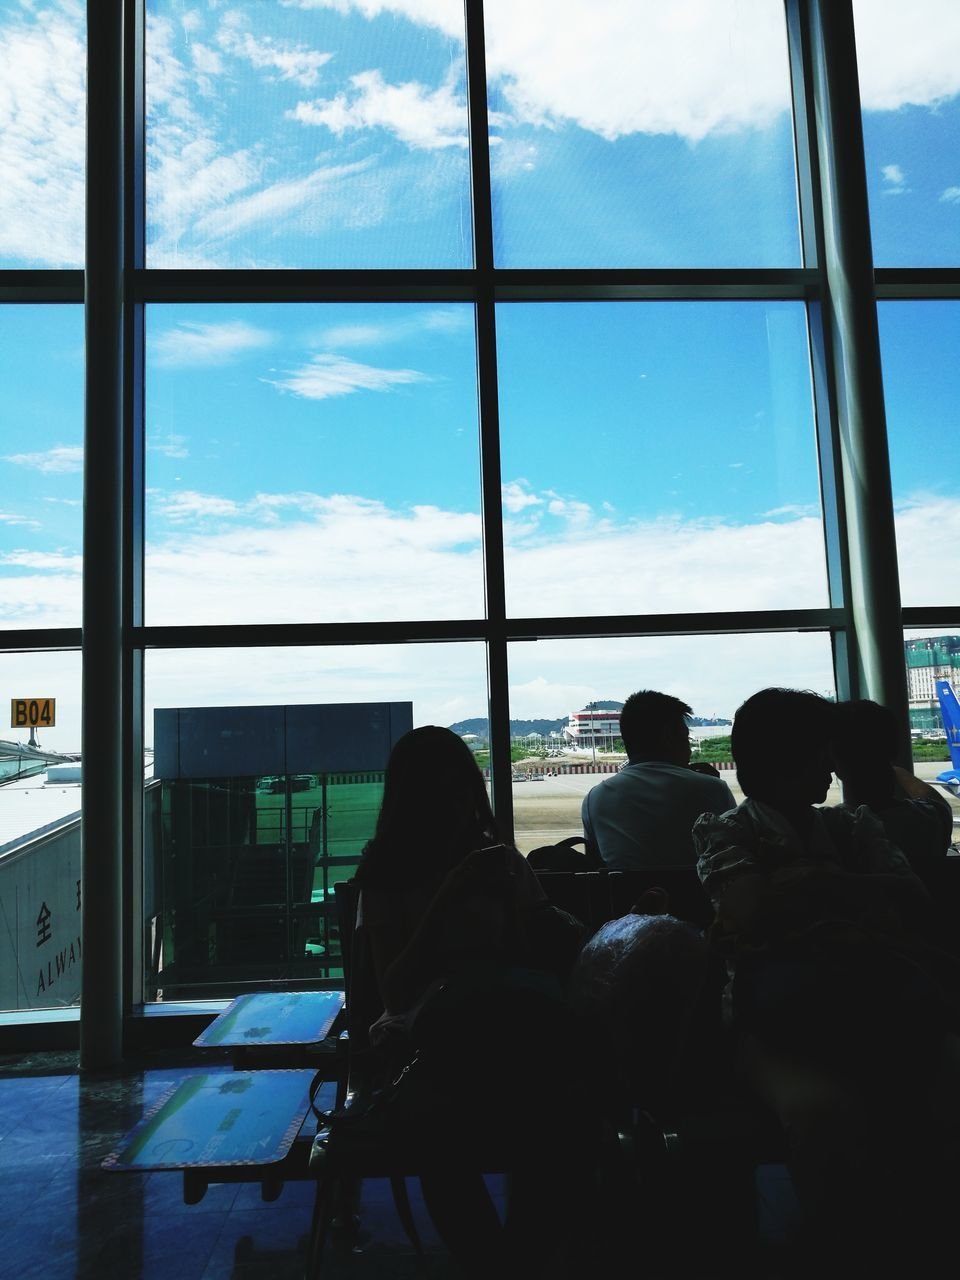 window, transparent, real people, glass - material, men, indoors, sky, sitting, group of people, people, public transportation, day, lifestyles, airport, travel, cloud - sky, transportation, mode of transportation, seat, airport departure area, waiting